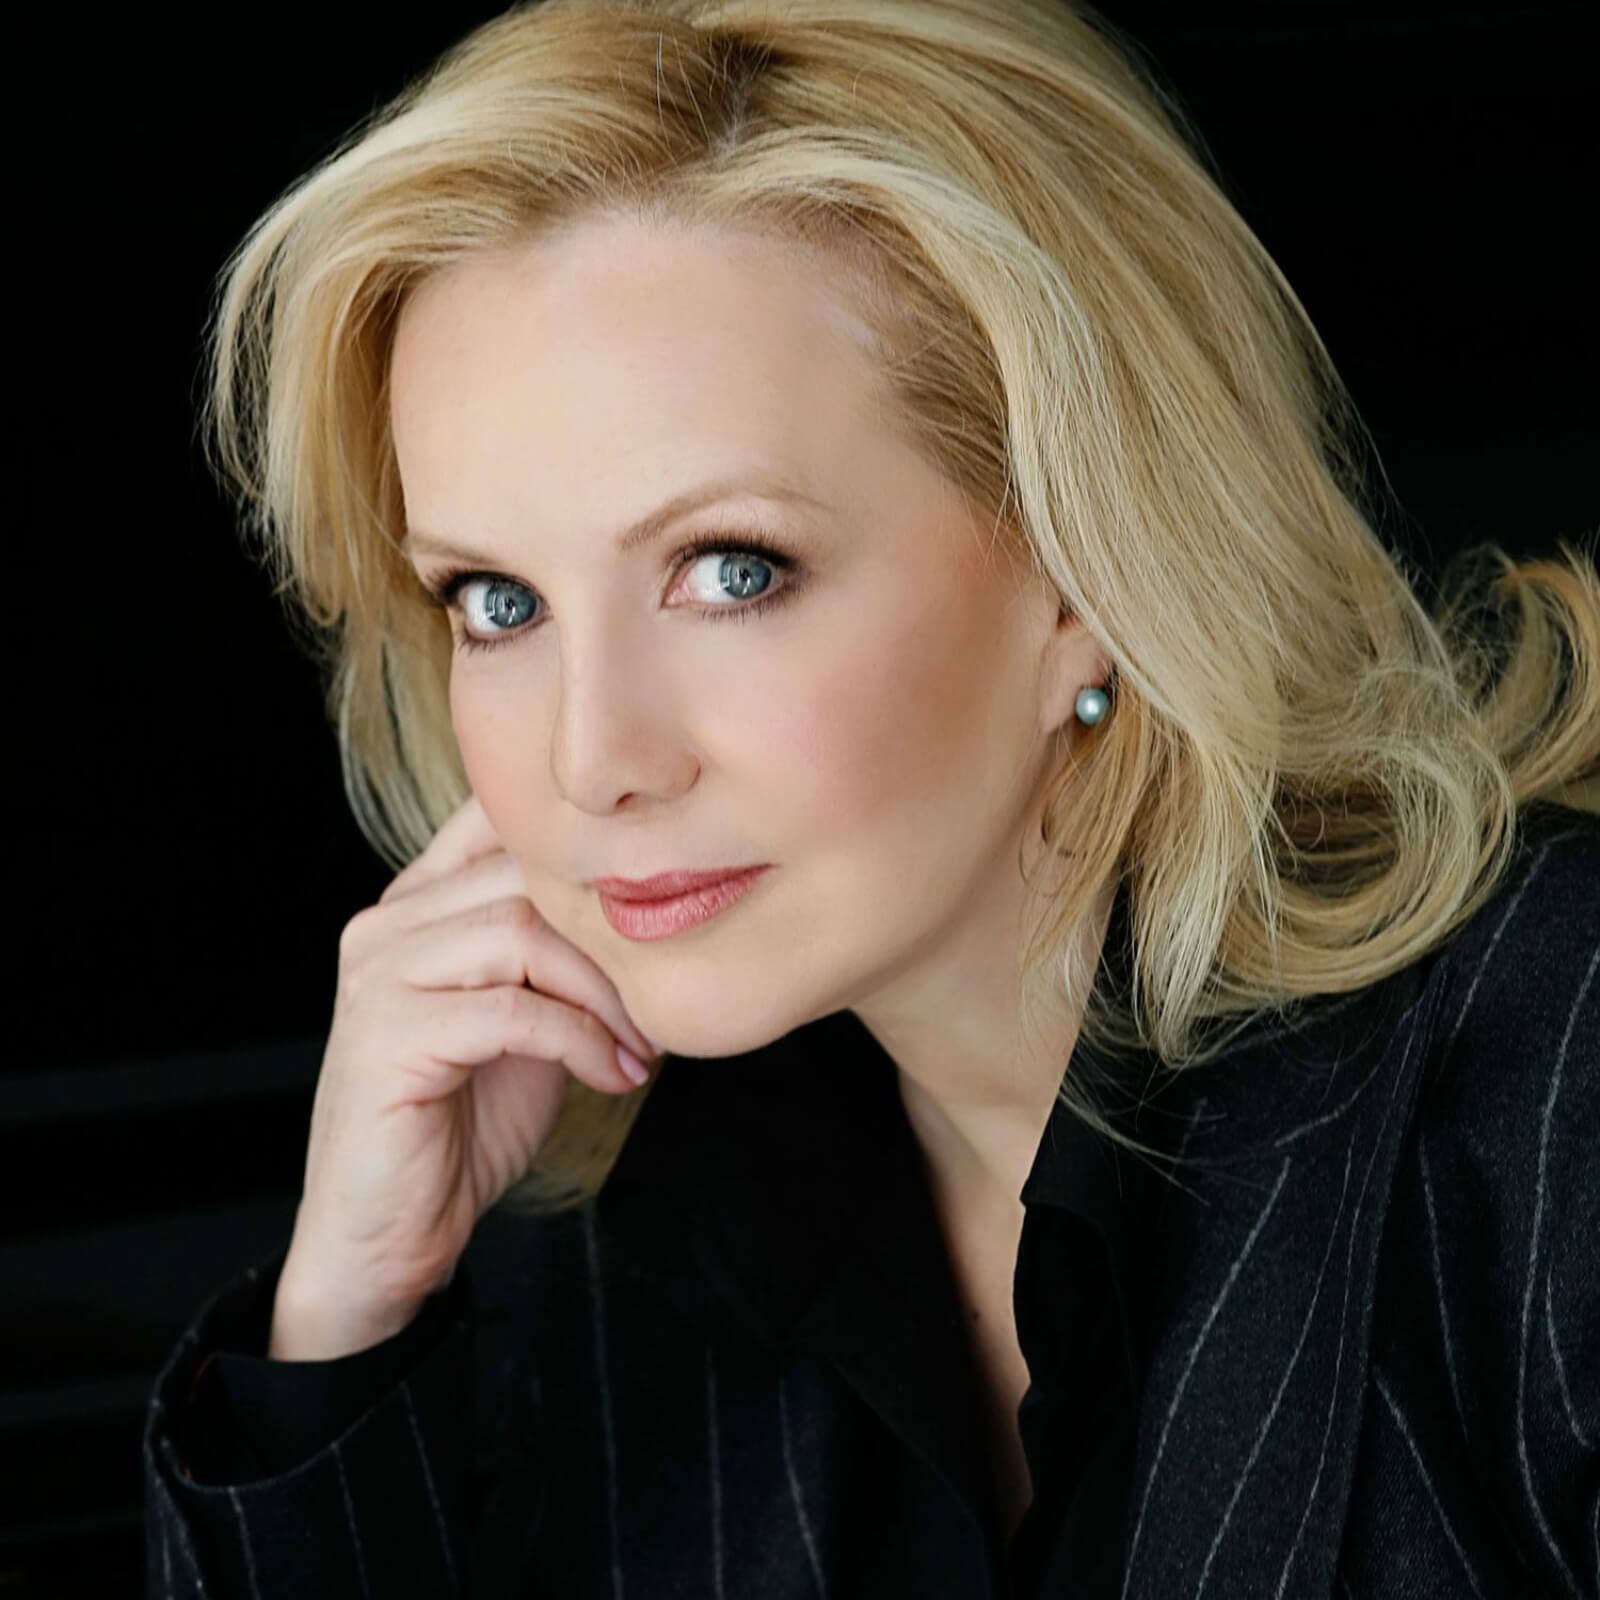 Headshot of Susan Stroman. She is wearing a pinstriped suit with chin resting on upstage hand. This photo is in color.